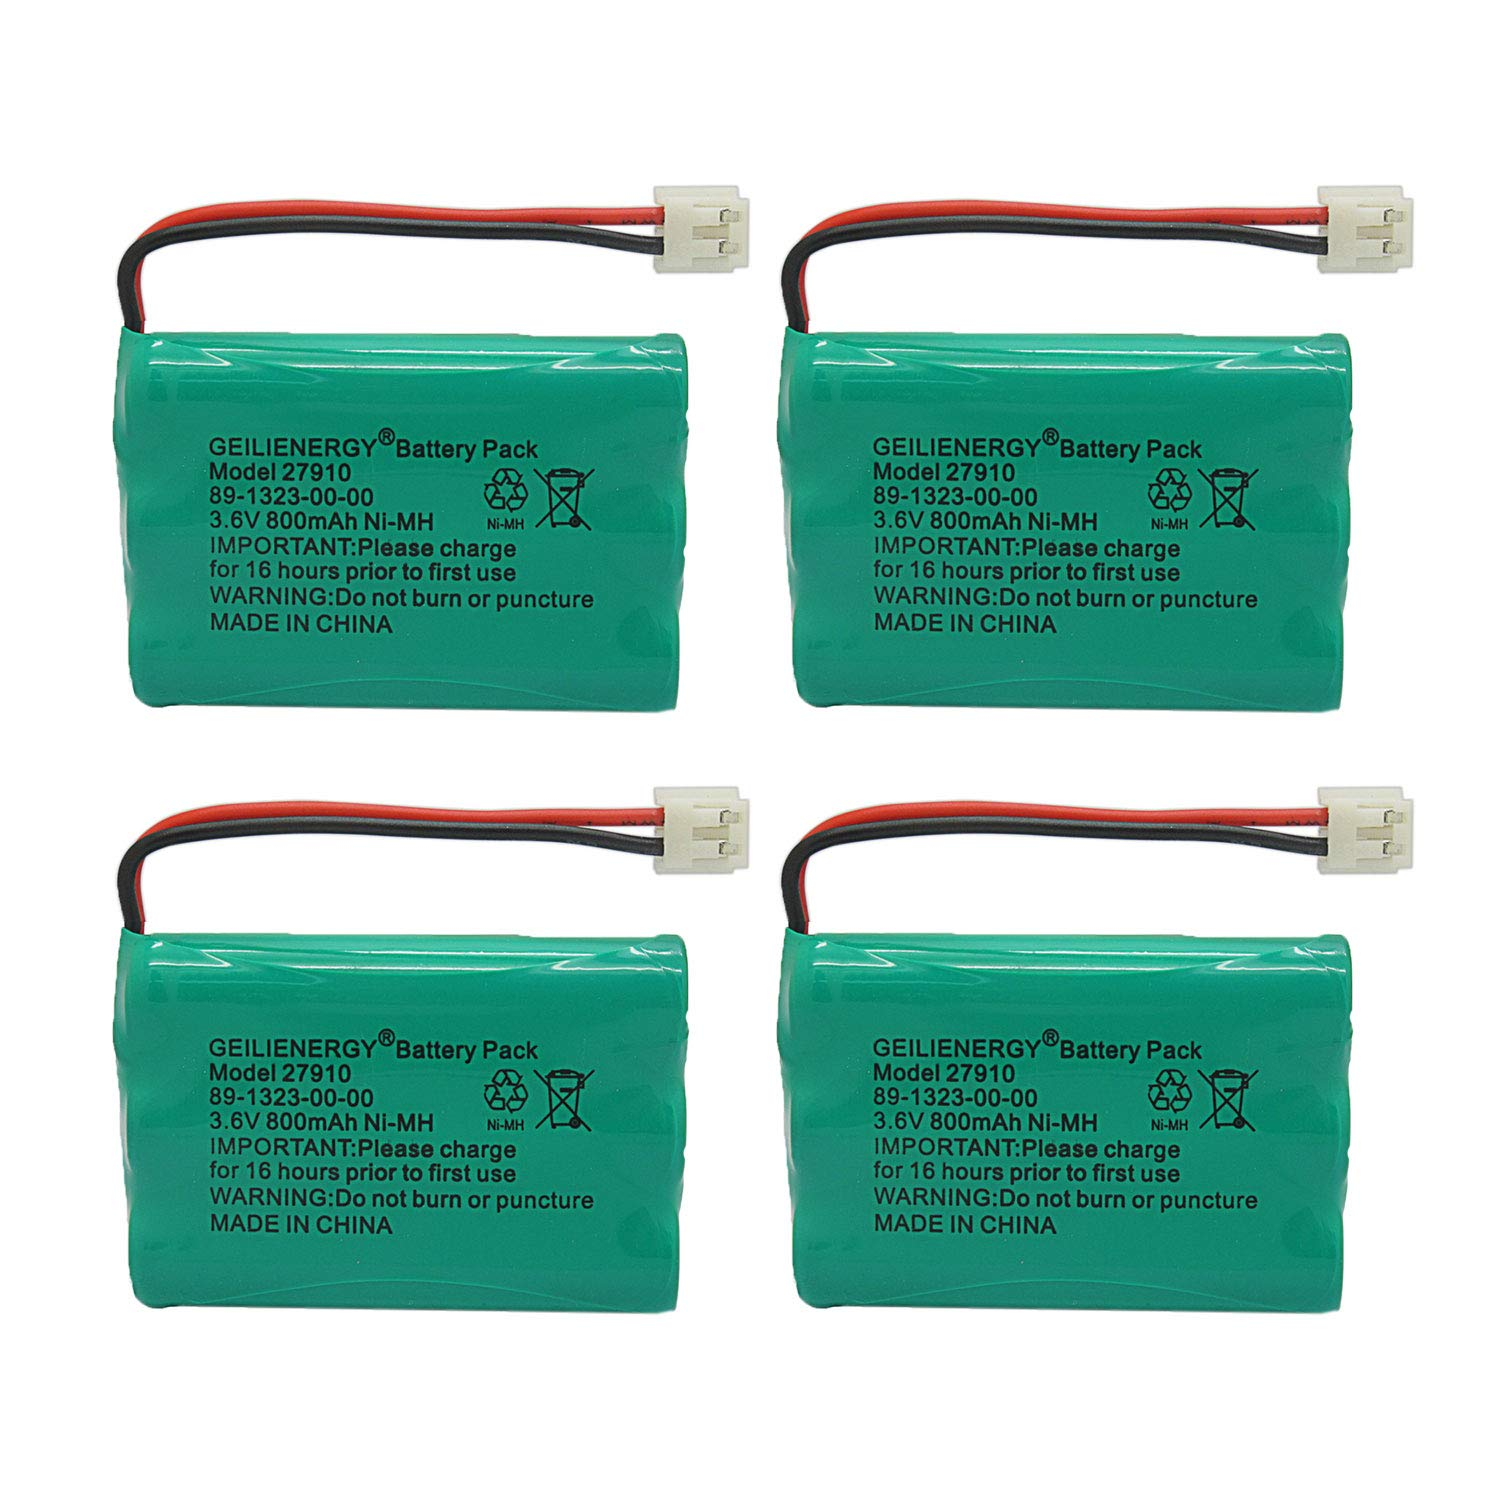 GEILIENERGY 27910 Cordless Phone Battery Rechargeable Compatible with Vtech 89-1323-00-00 AT&T E1112 E2801 TL72108 Motorola SD-7501 RadioShack 23-959 Cordless Handsets(Pack of 4)